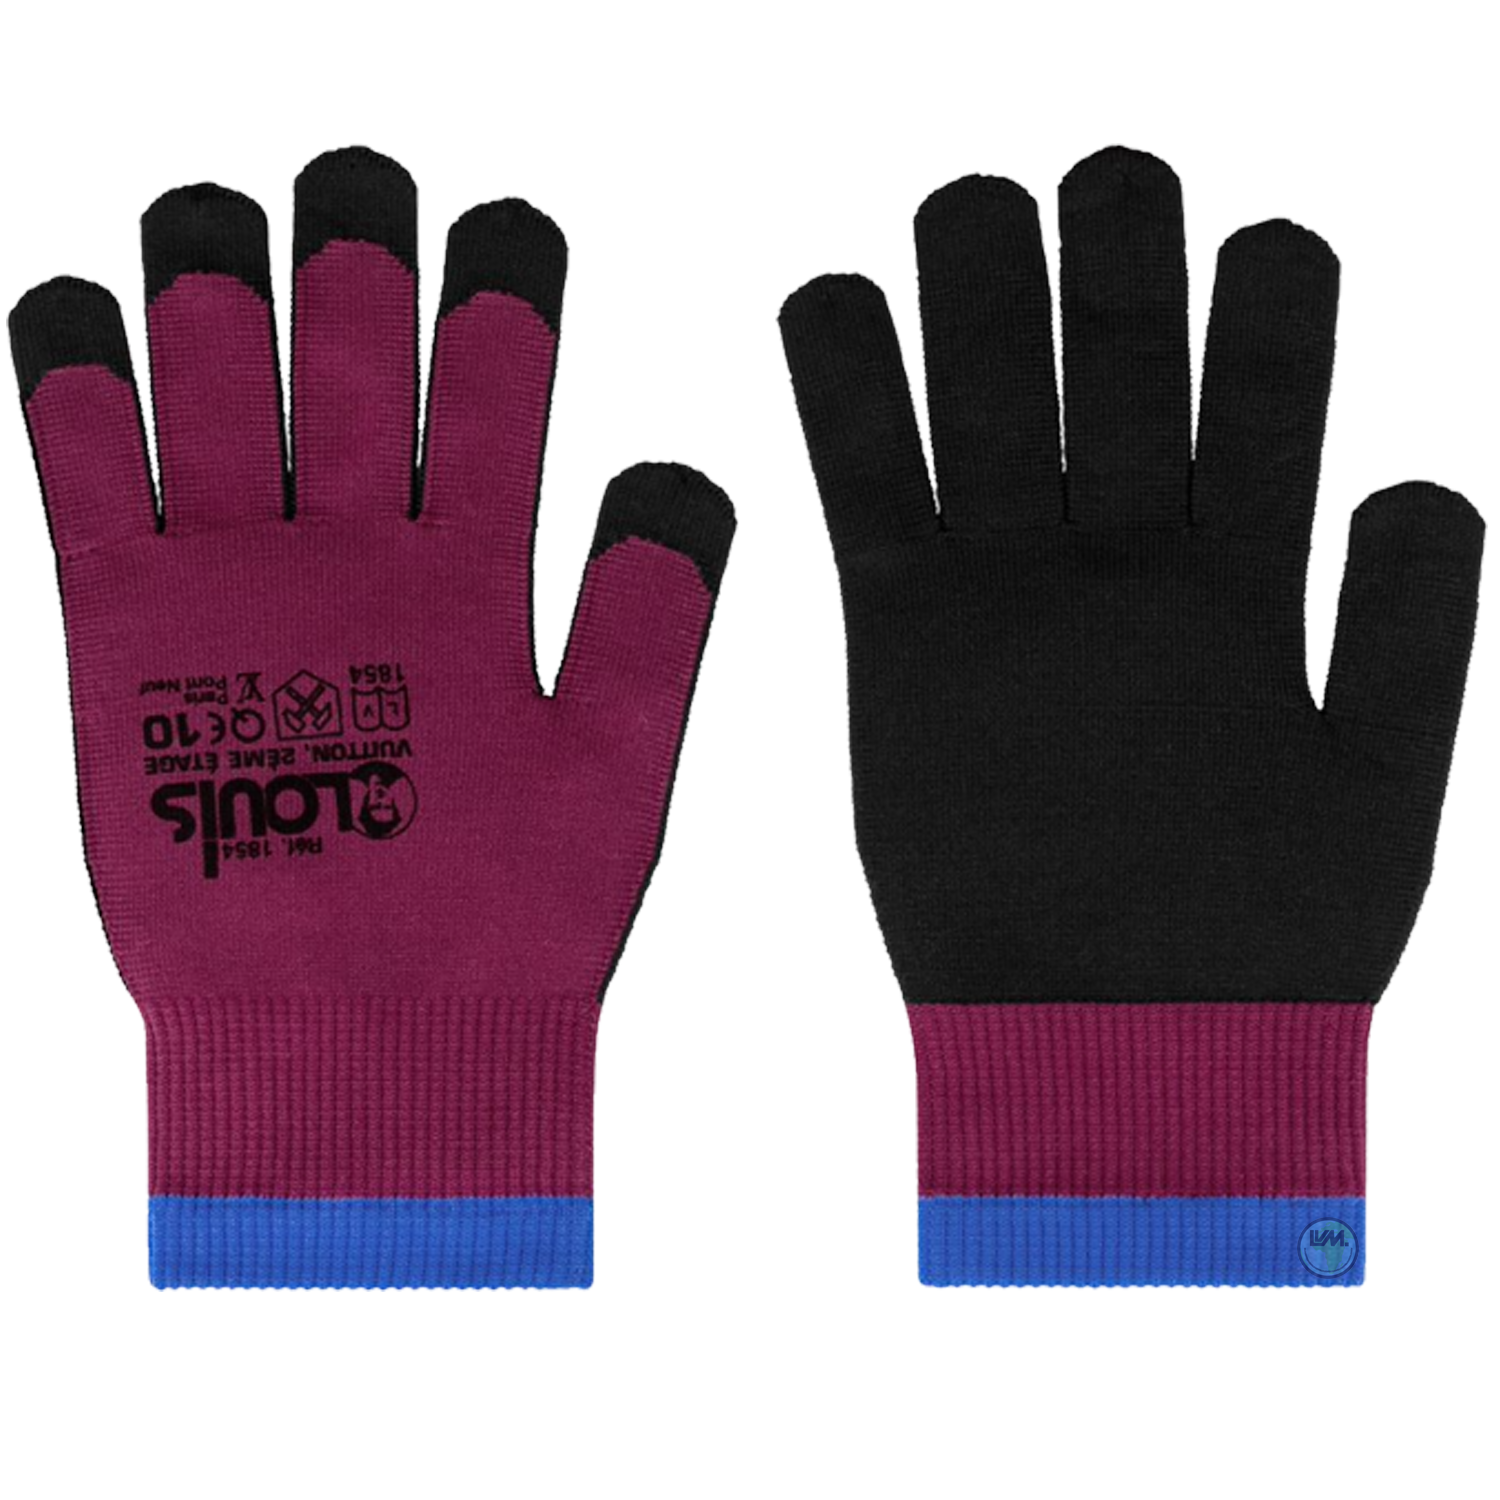 gloves - €250 $365mp2424purple